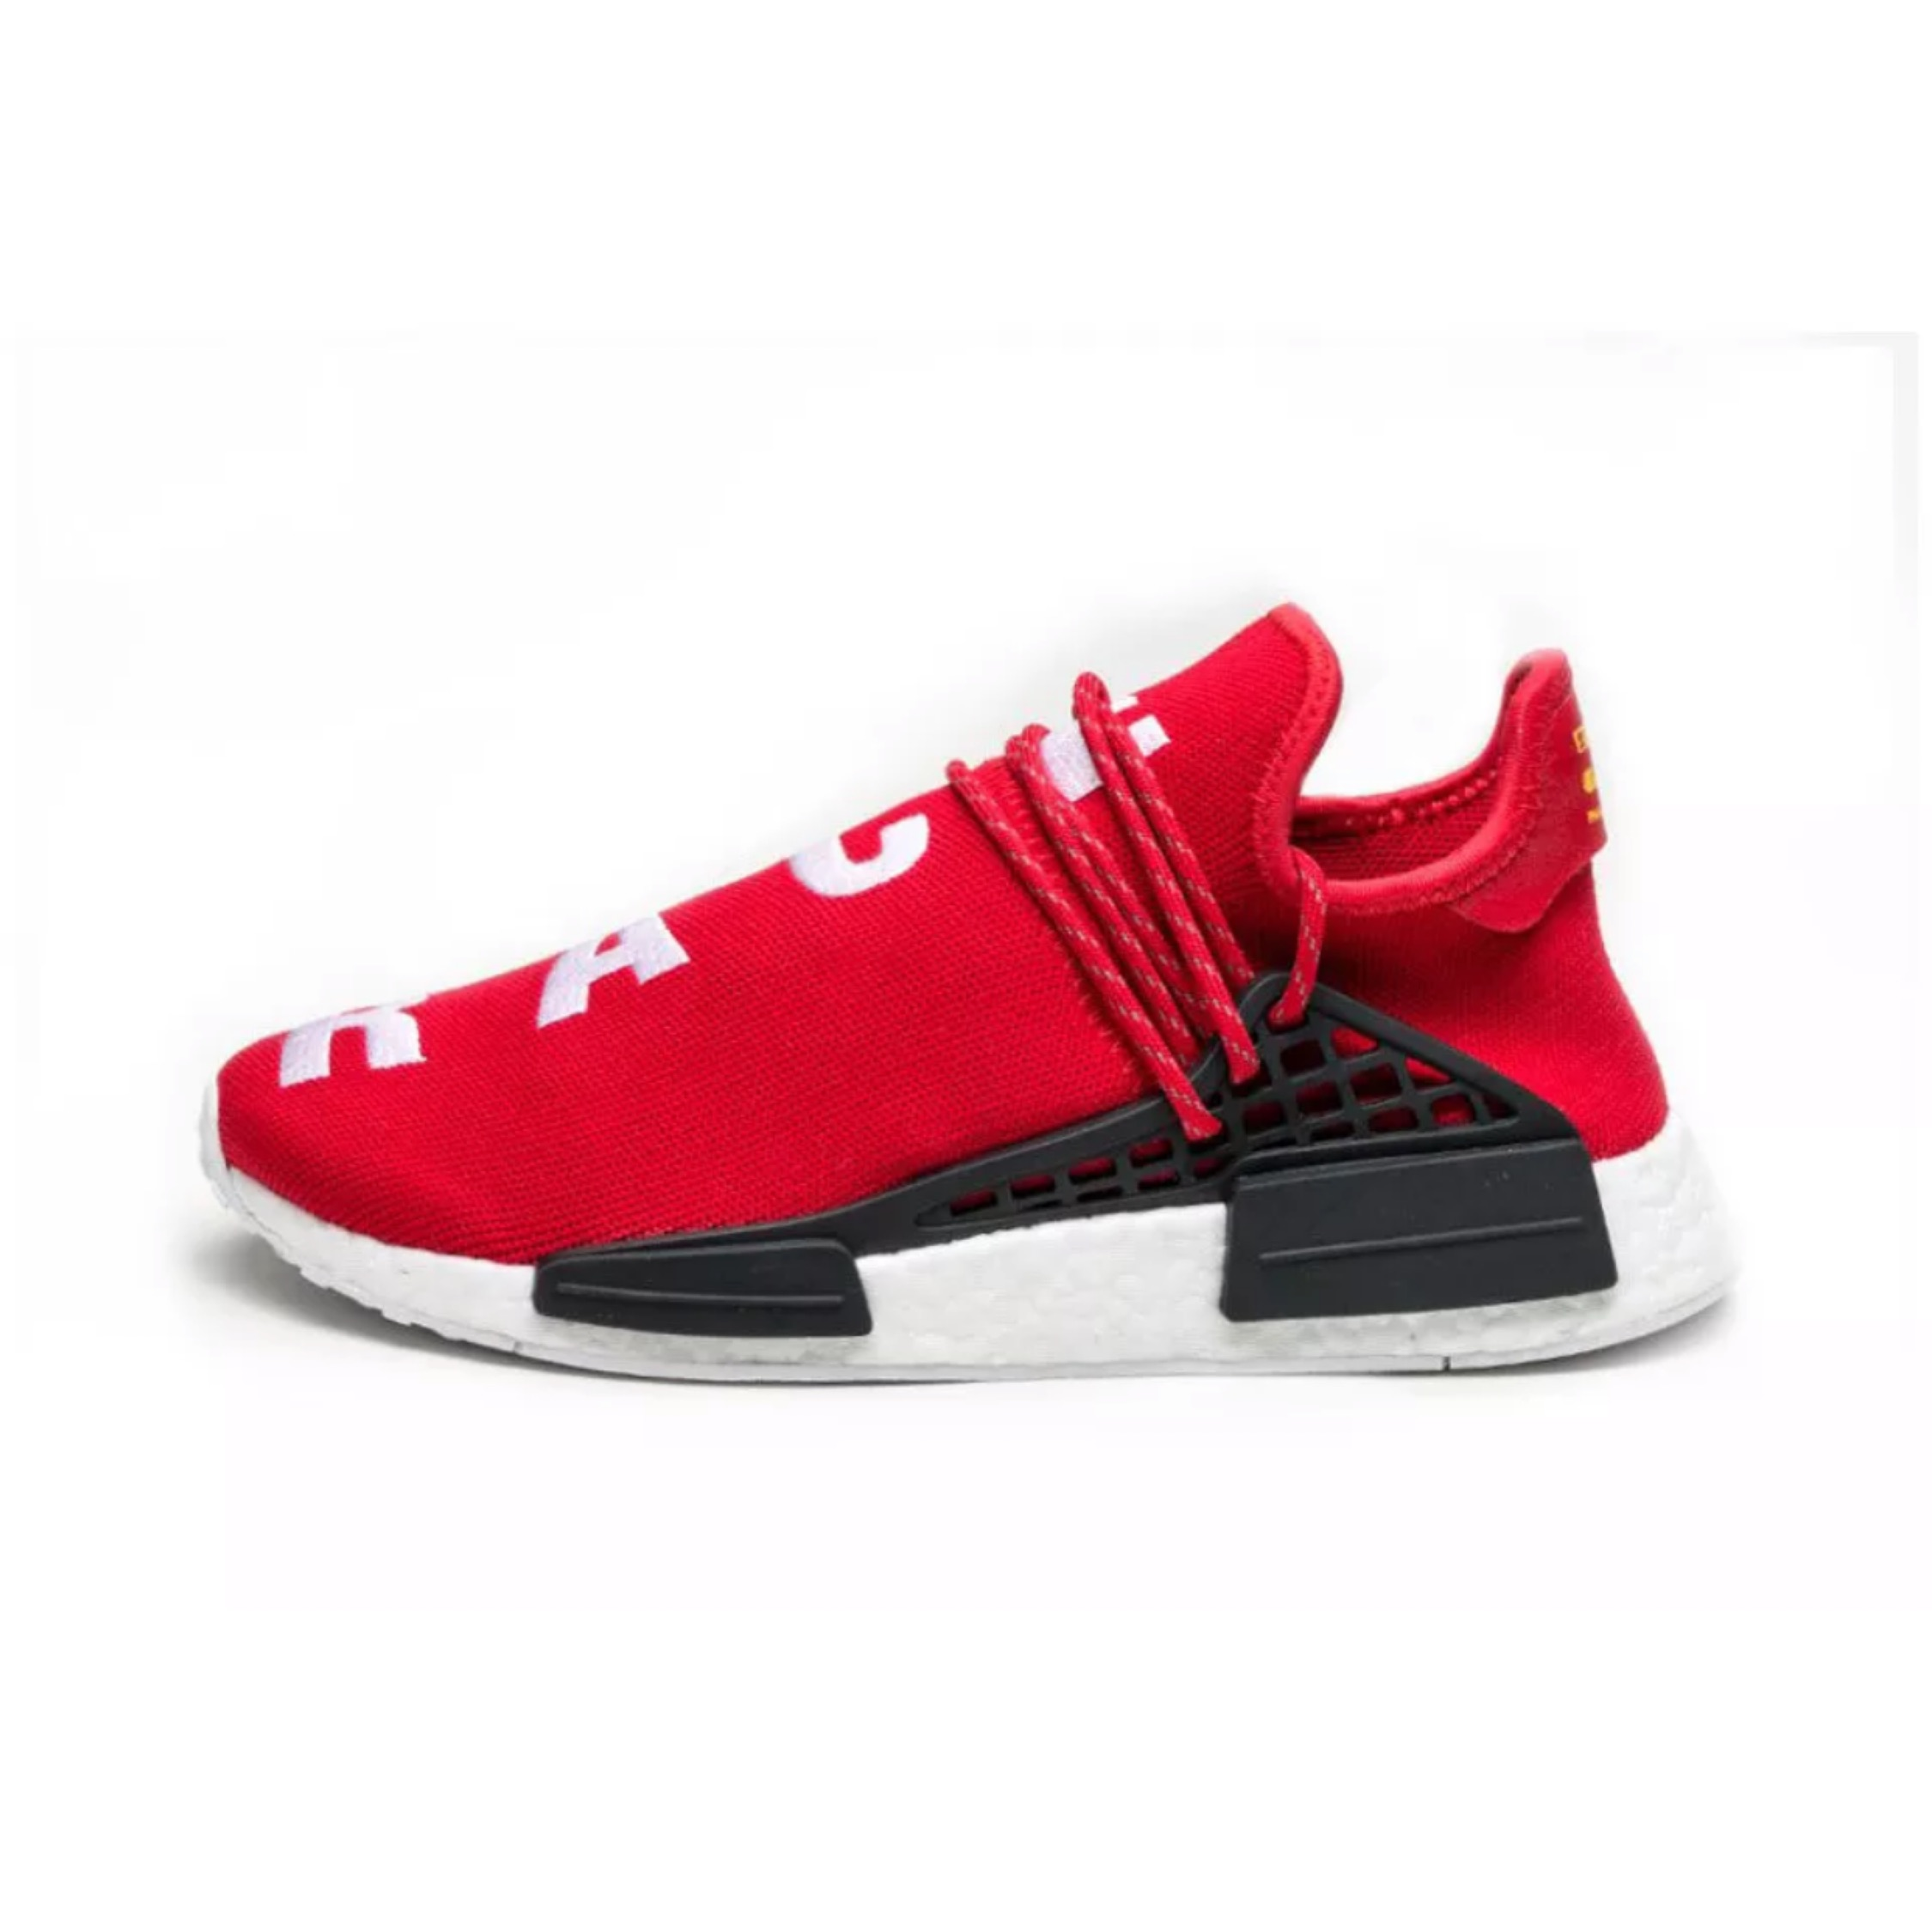 Adidas Nmd Human Race Scarlet Red White